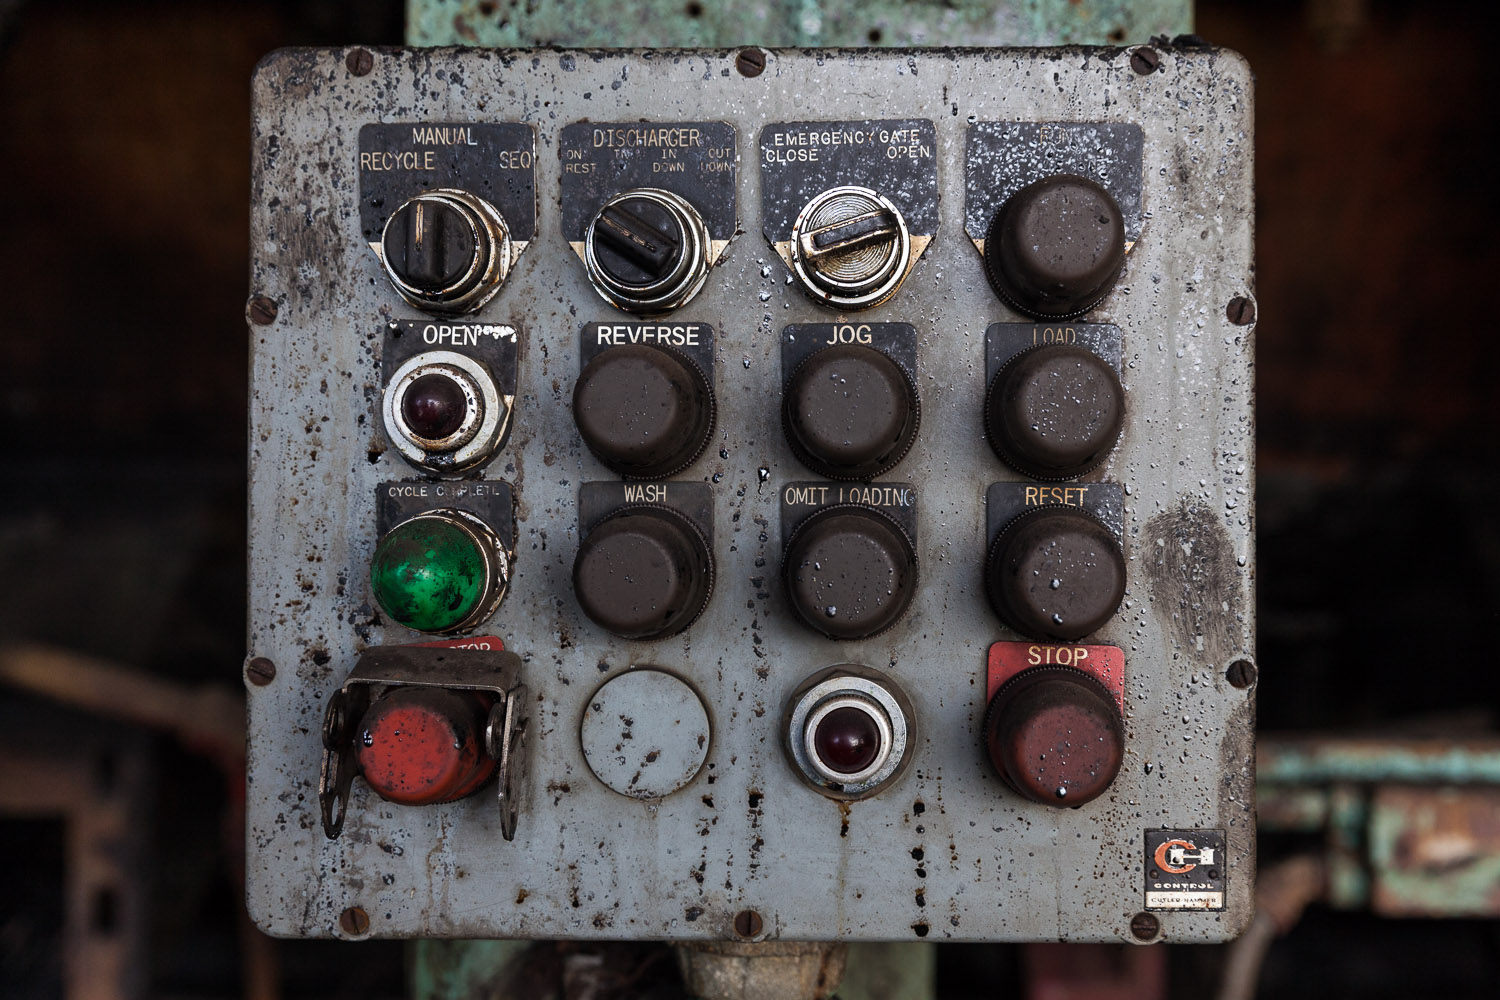 Roberts Centrifugal Machine Control Panel, Second Floor, Raw Sugar Wash House, Domino Sugar Factory